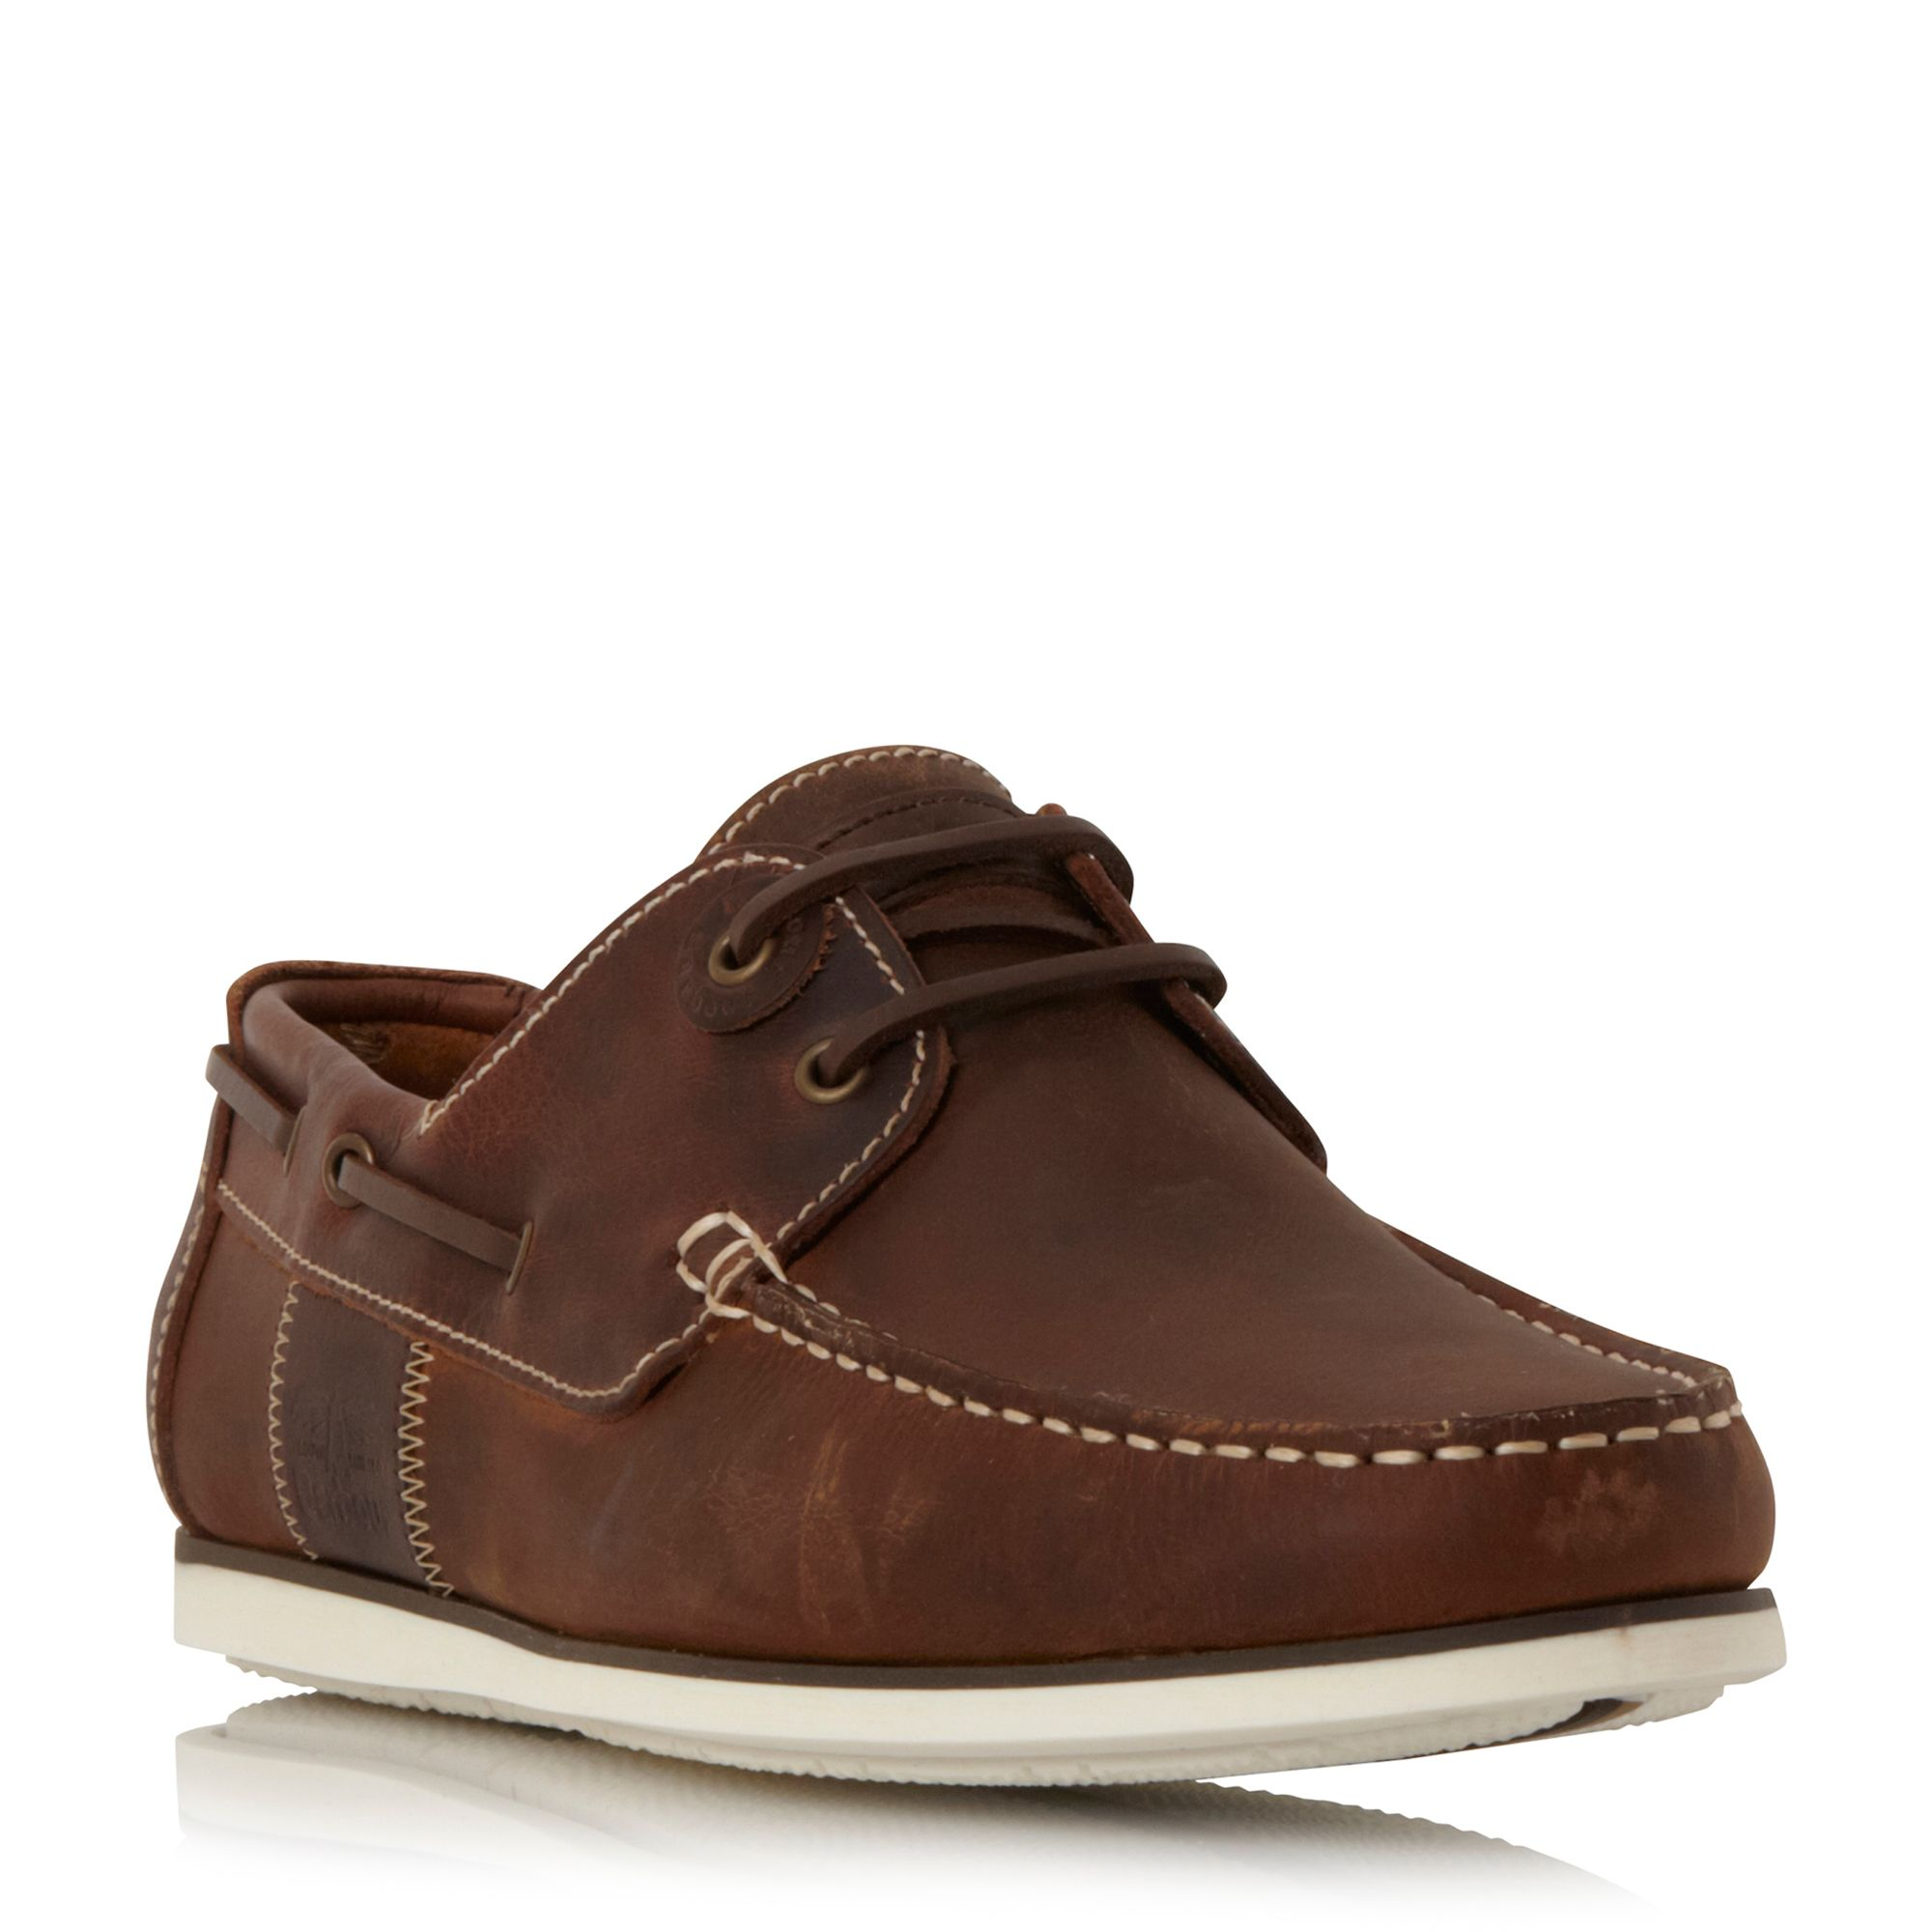 Barbour Capstan eyelet lace up boat shoes Beige